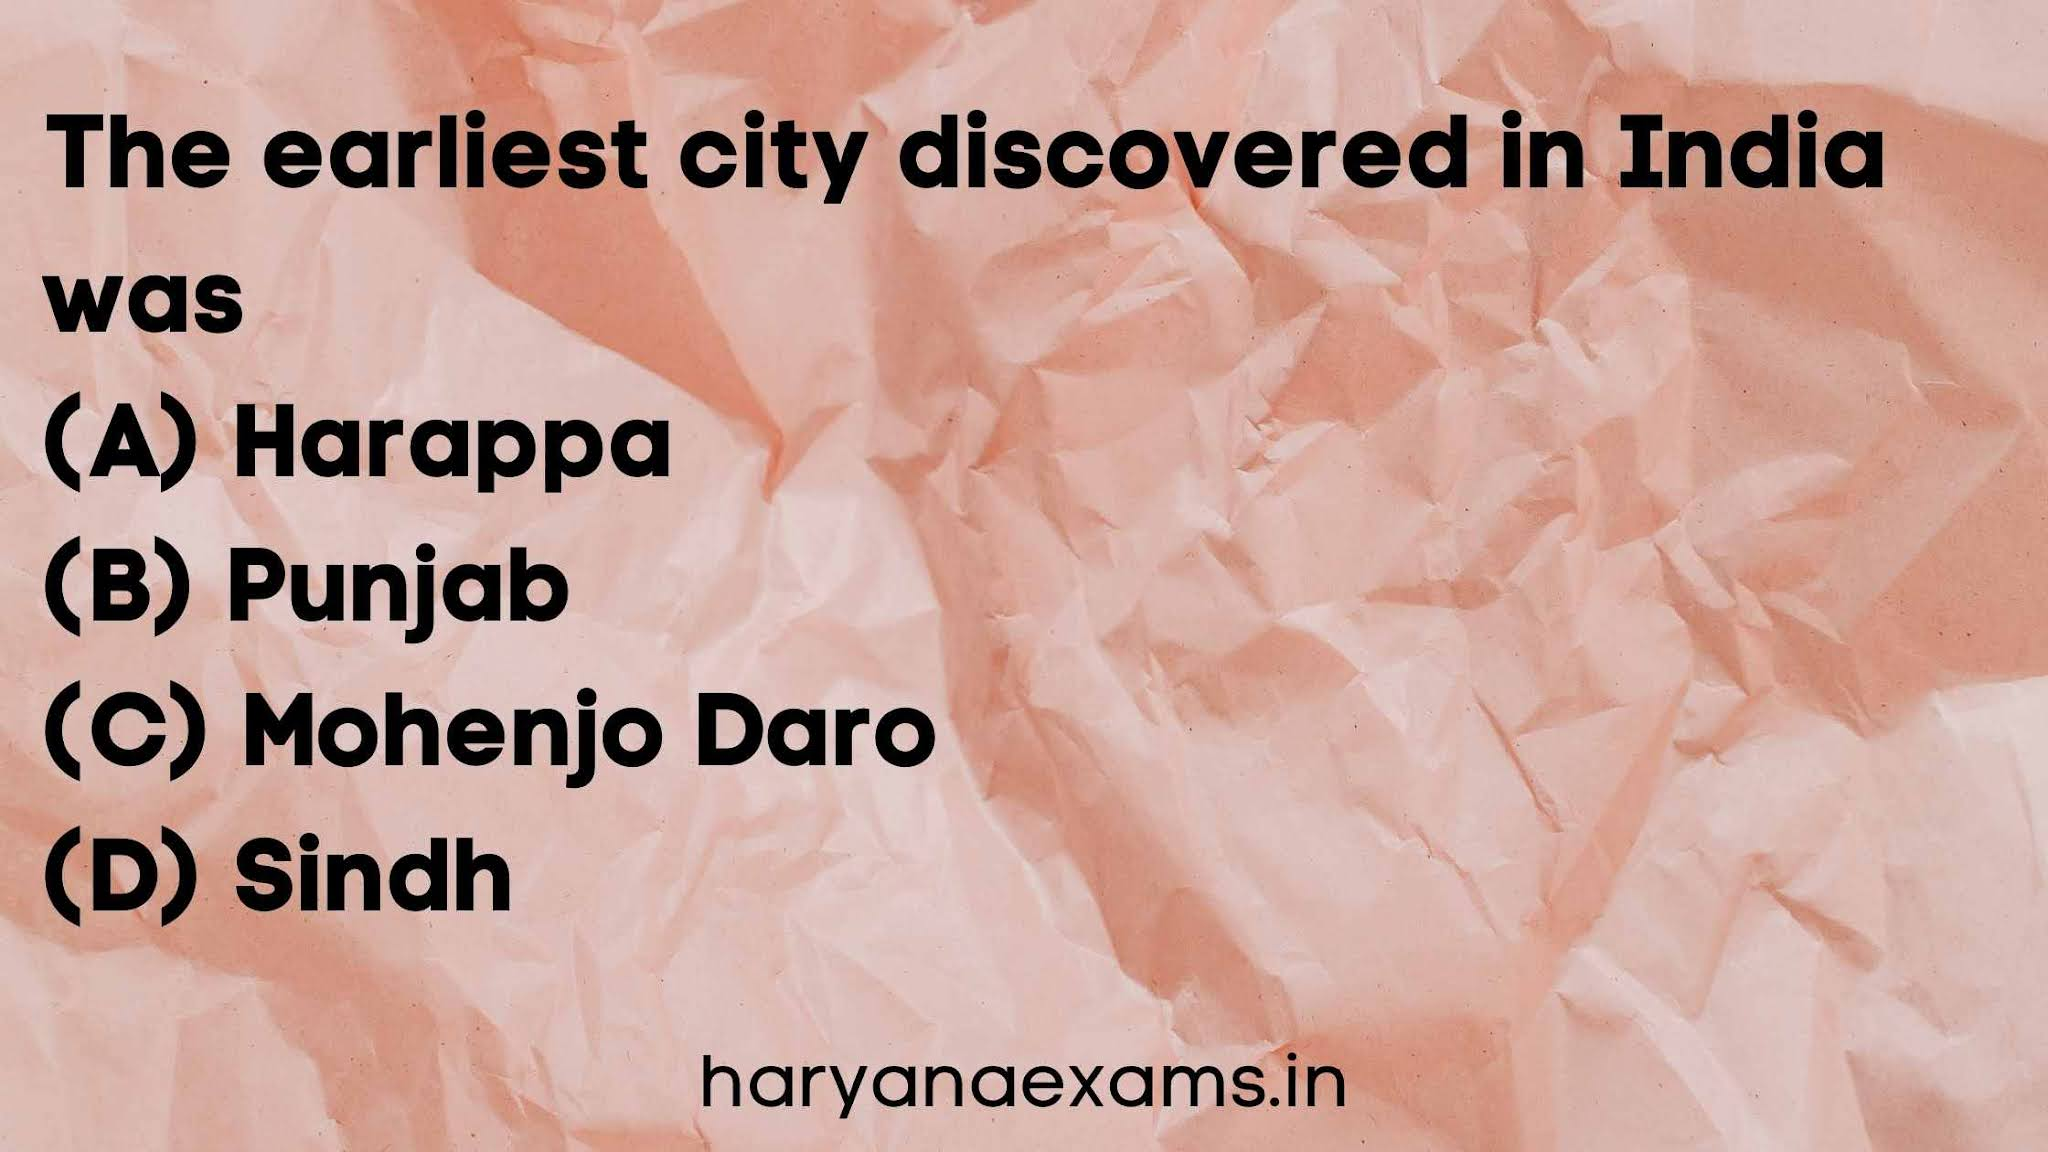 The earliest city discovered in India was   (A) Harappa   (B) Punjab   (C) Mohenjo Daro   (D) Sindh